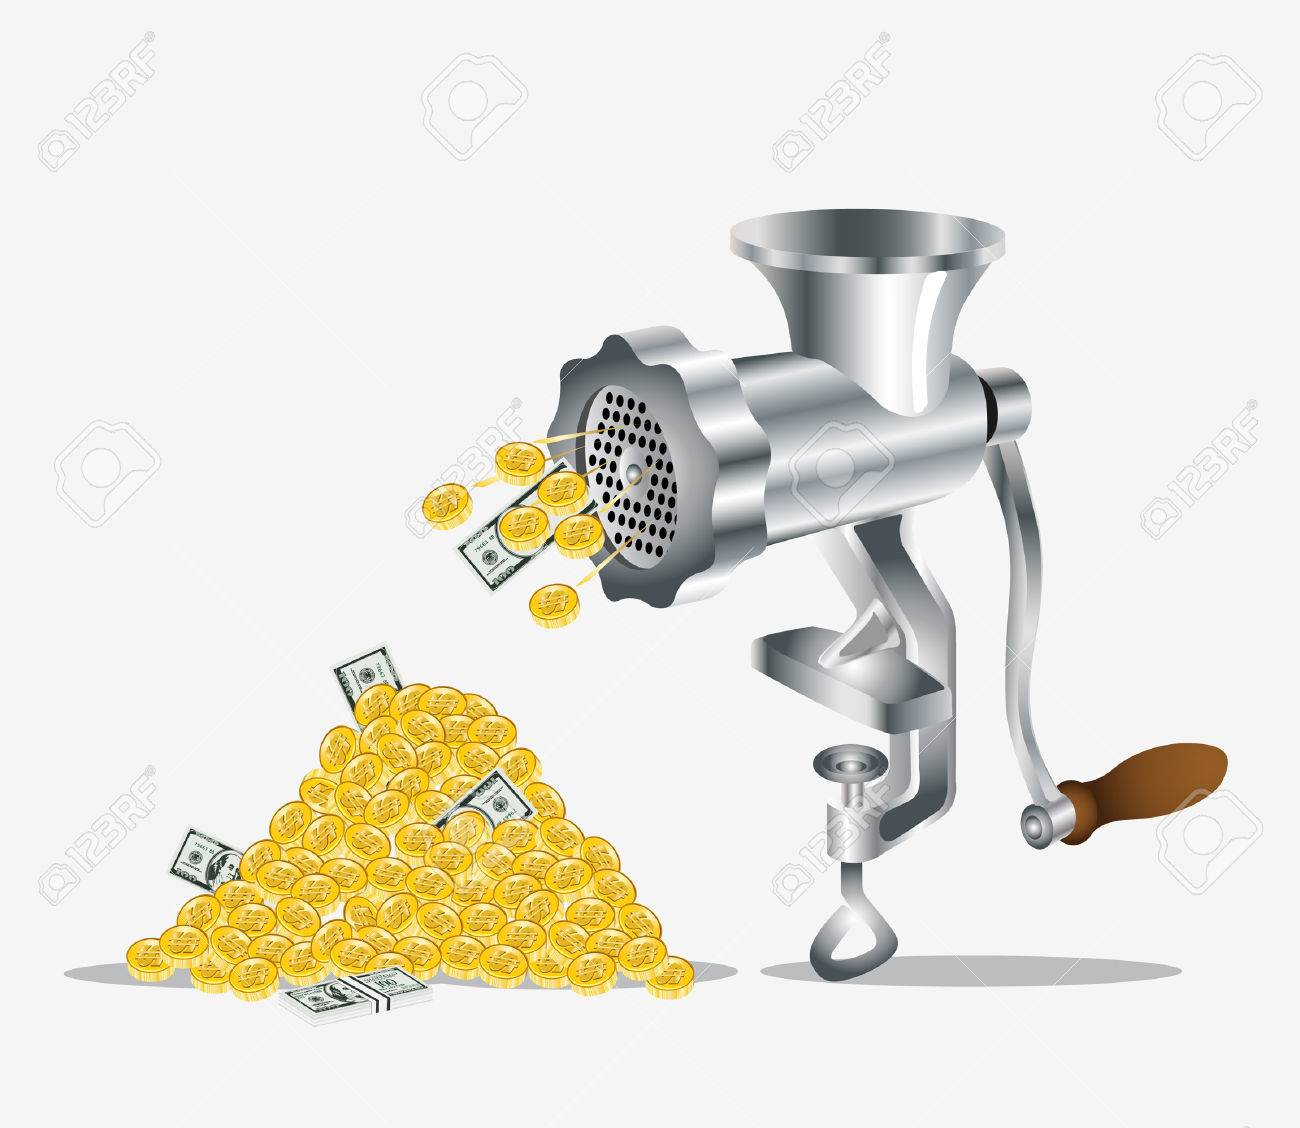 gold money dollar meat mincer Stock Vector - 8142496